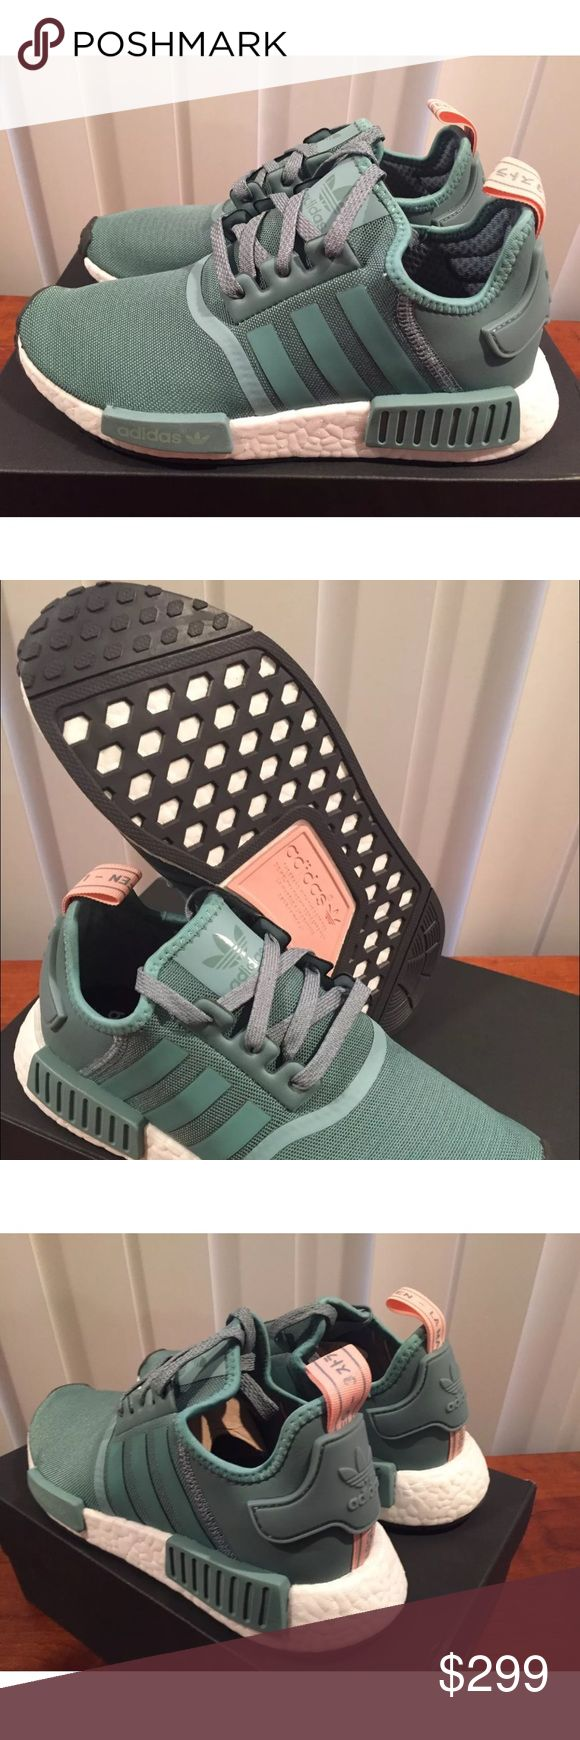 Adidas NMD R1 Vapour Steel Green Pink Wmns 7 BNIB! BNIB 100% Authentic Adidas NMD_R1 Vapour Steel Green Pink Wmns Size 7 Sold Out Worldwide! Last Pair In This Size! Adidas Shoes Athletic Shoes